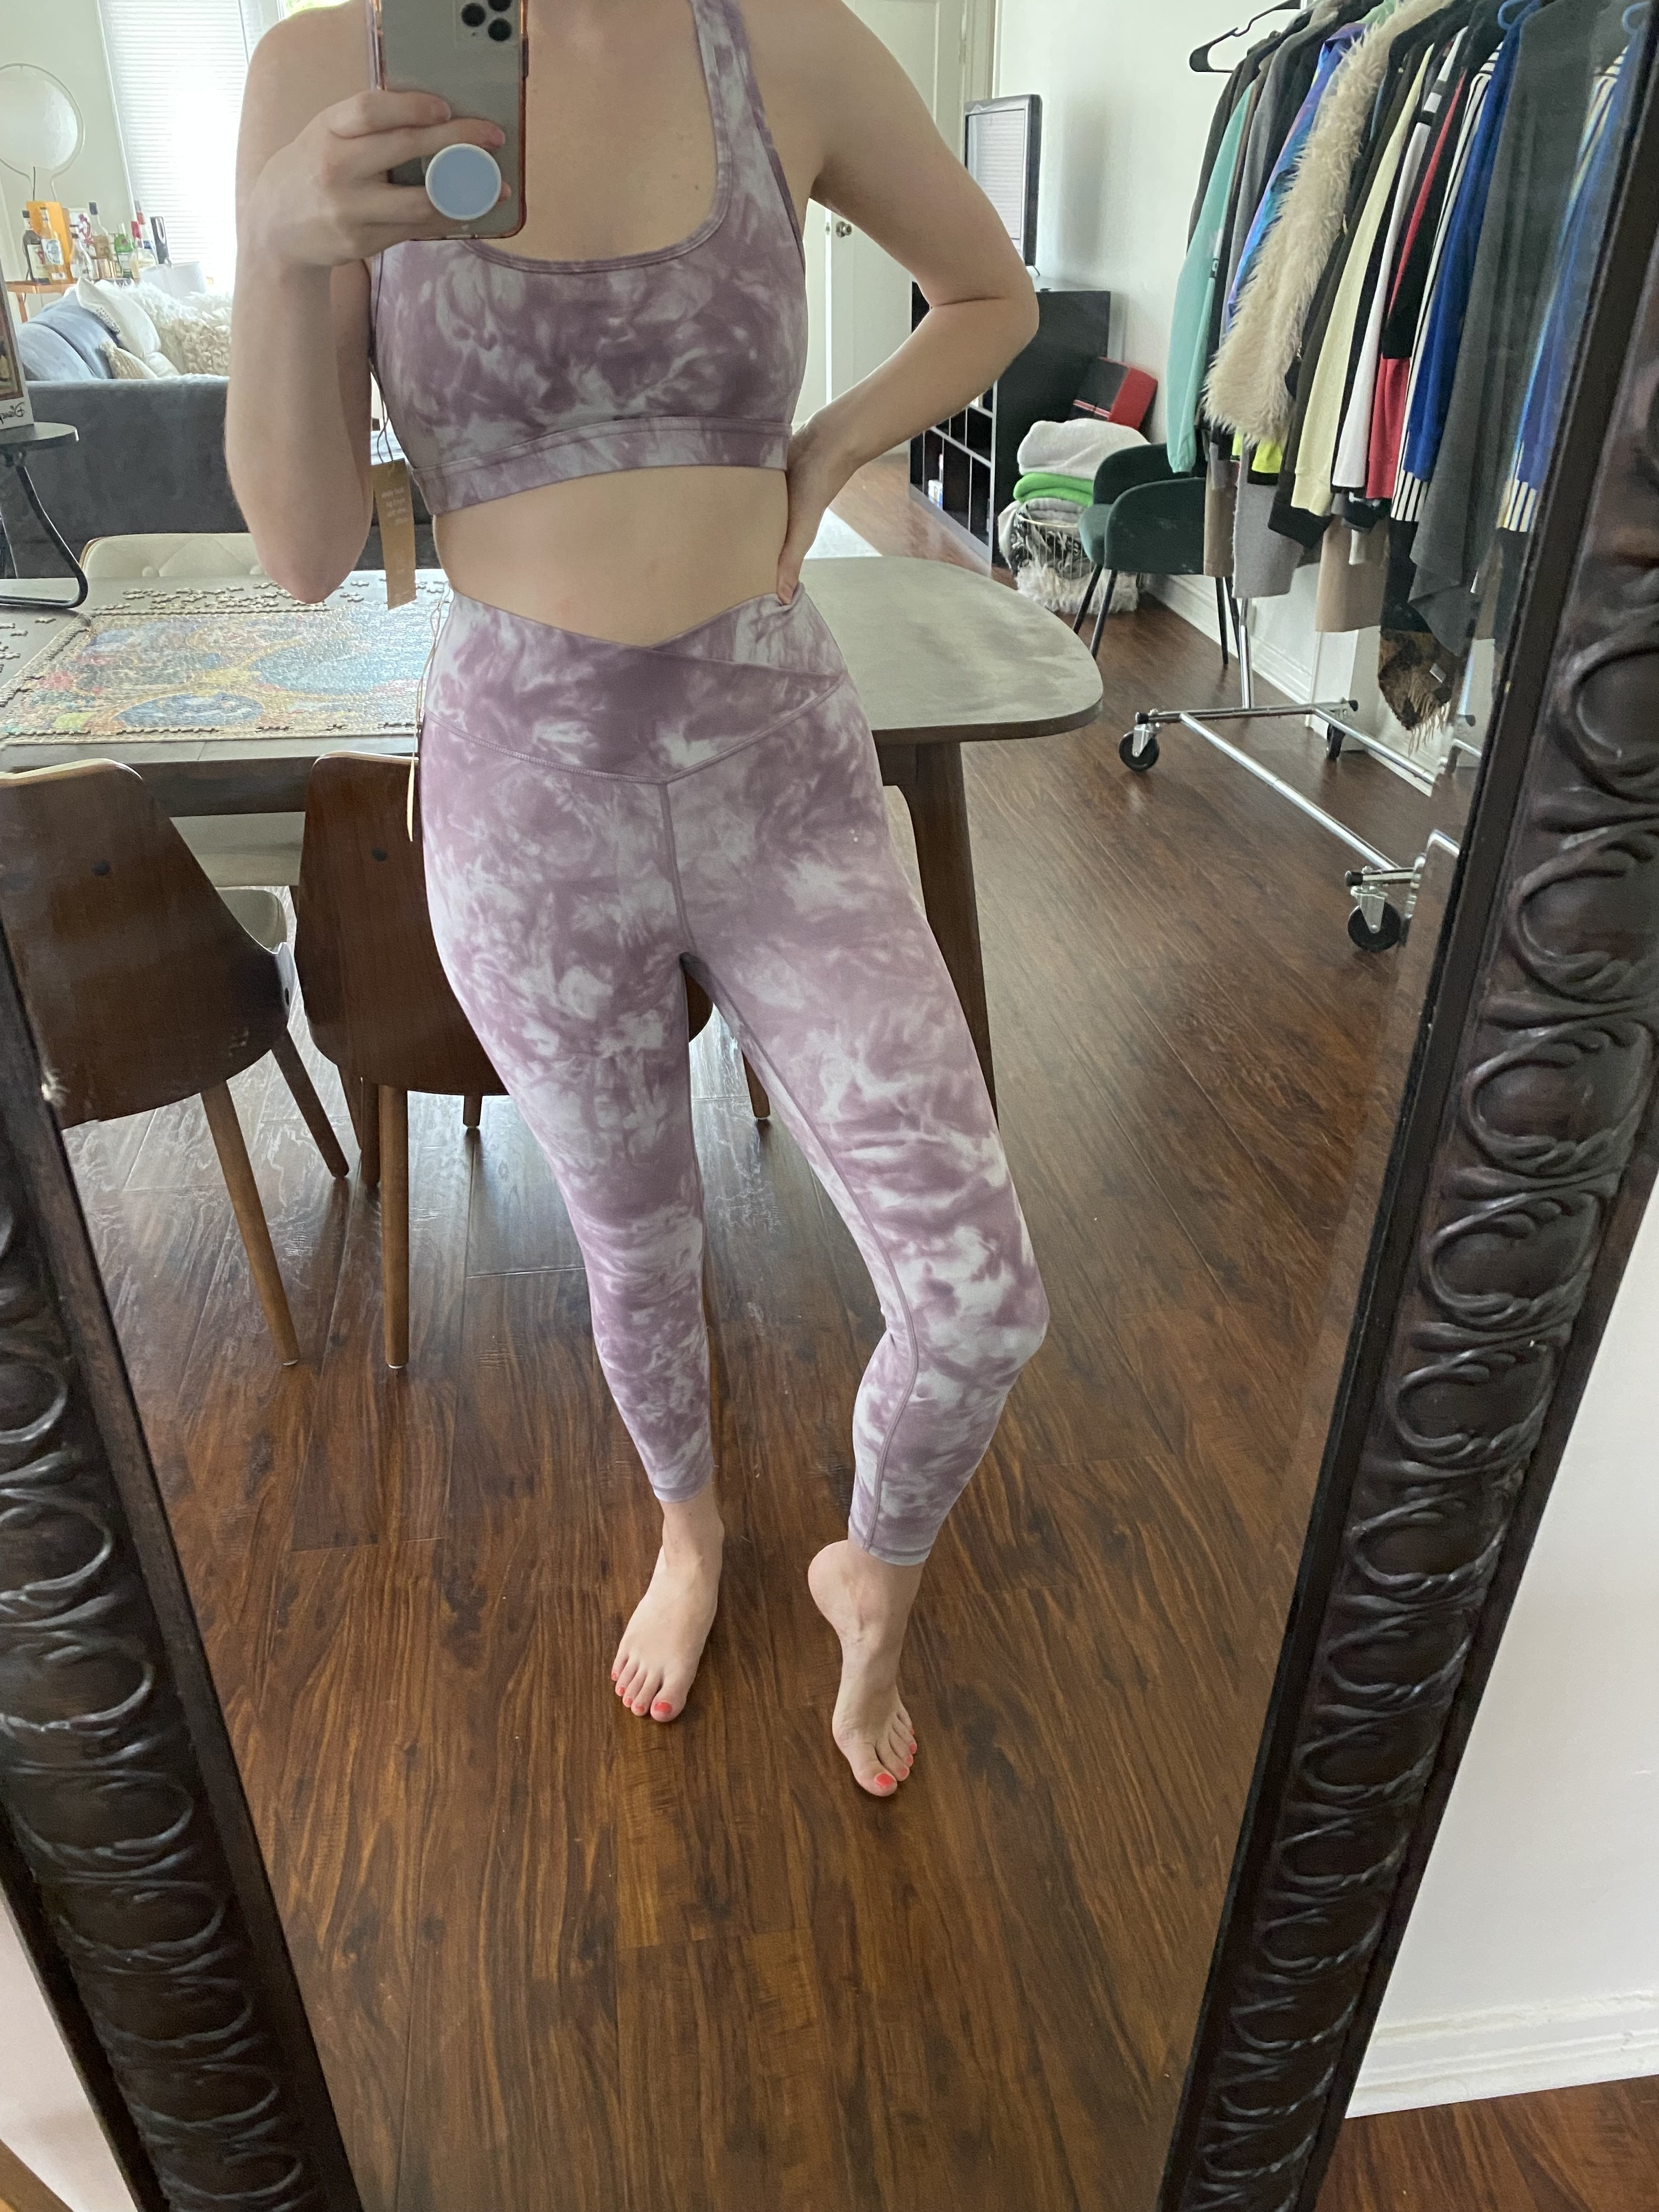 Me wearing the bra and leggings. The bra and leggings have a marble print, the sports bra is slightly low-cut with a large key hole cutout in the back, and the leggings come down to my ankles and have a crisscross waistband